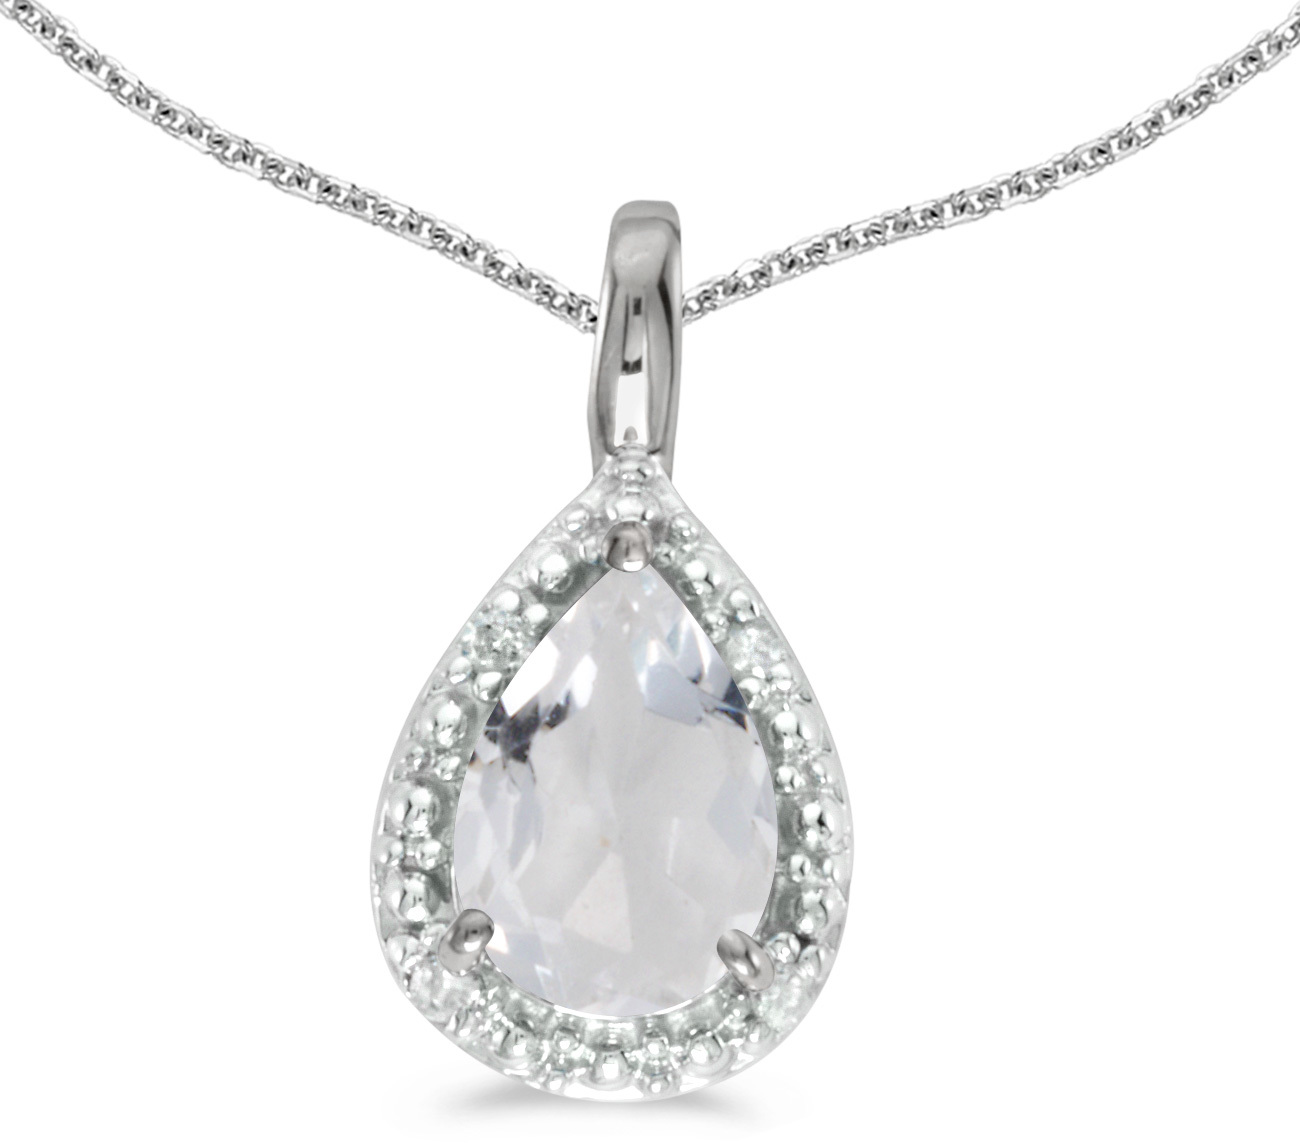 14k White Gold Pear White Topaz Pendant (Chain NOT included)